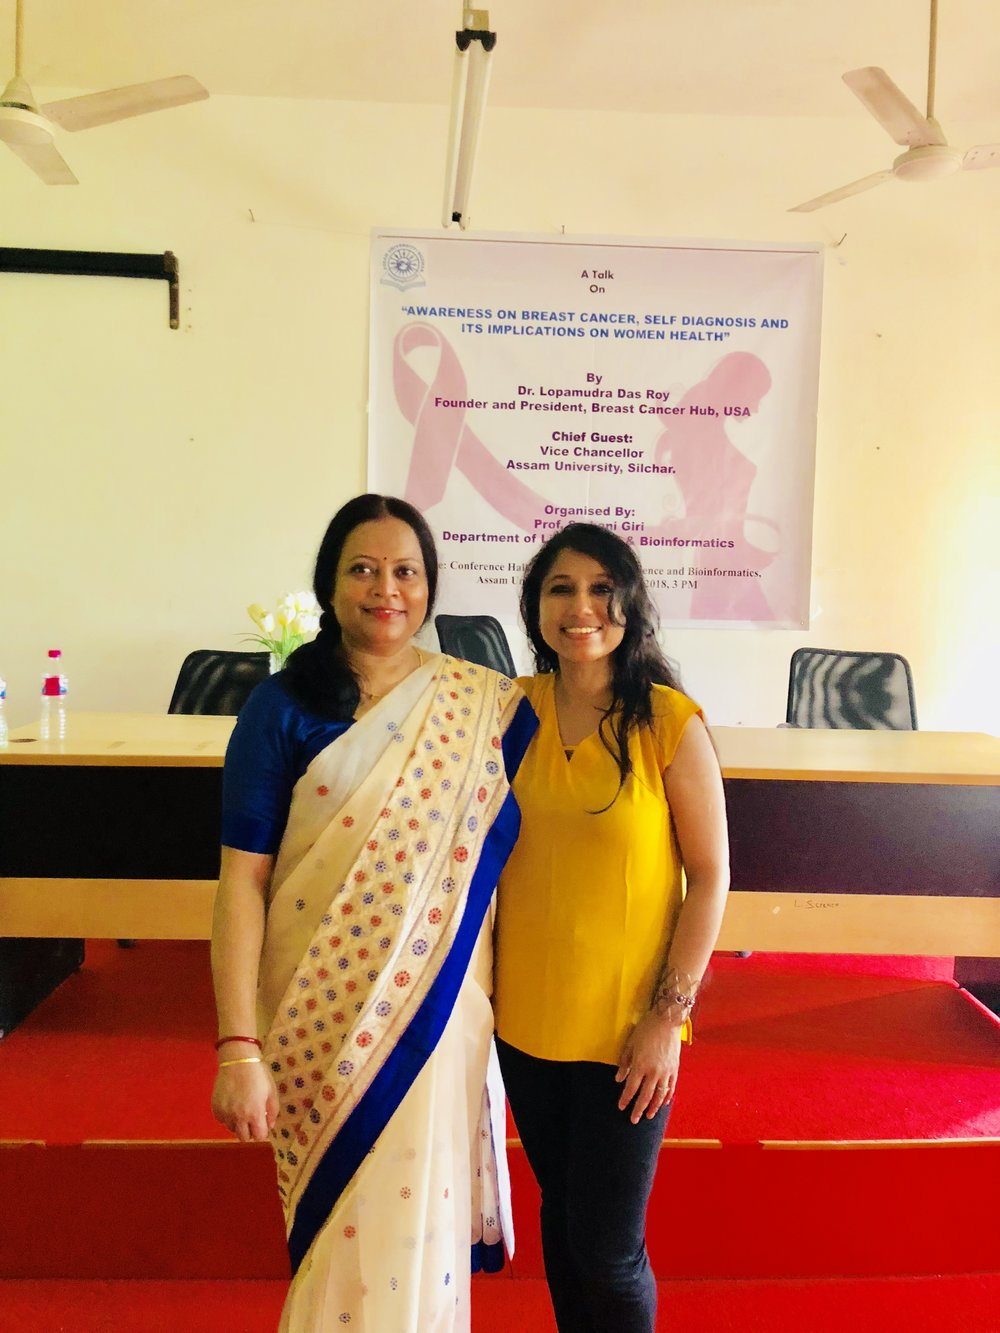 "I was so honored to be invited by my Ph.D mentor, Professor. Sarbani Giri, Department of Life Science & Bioinformatics to give a talk on "" Awareness on Breast Cancer, Self Diagnosis, and its implications on Women Health"". My heartfelt thanks to Dr. Giri for supporting me and the cause and organizing the event"